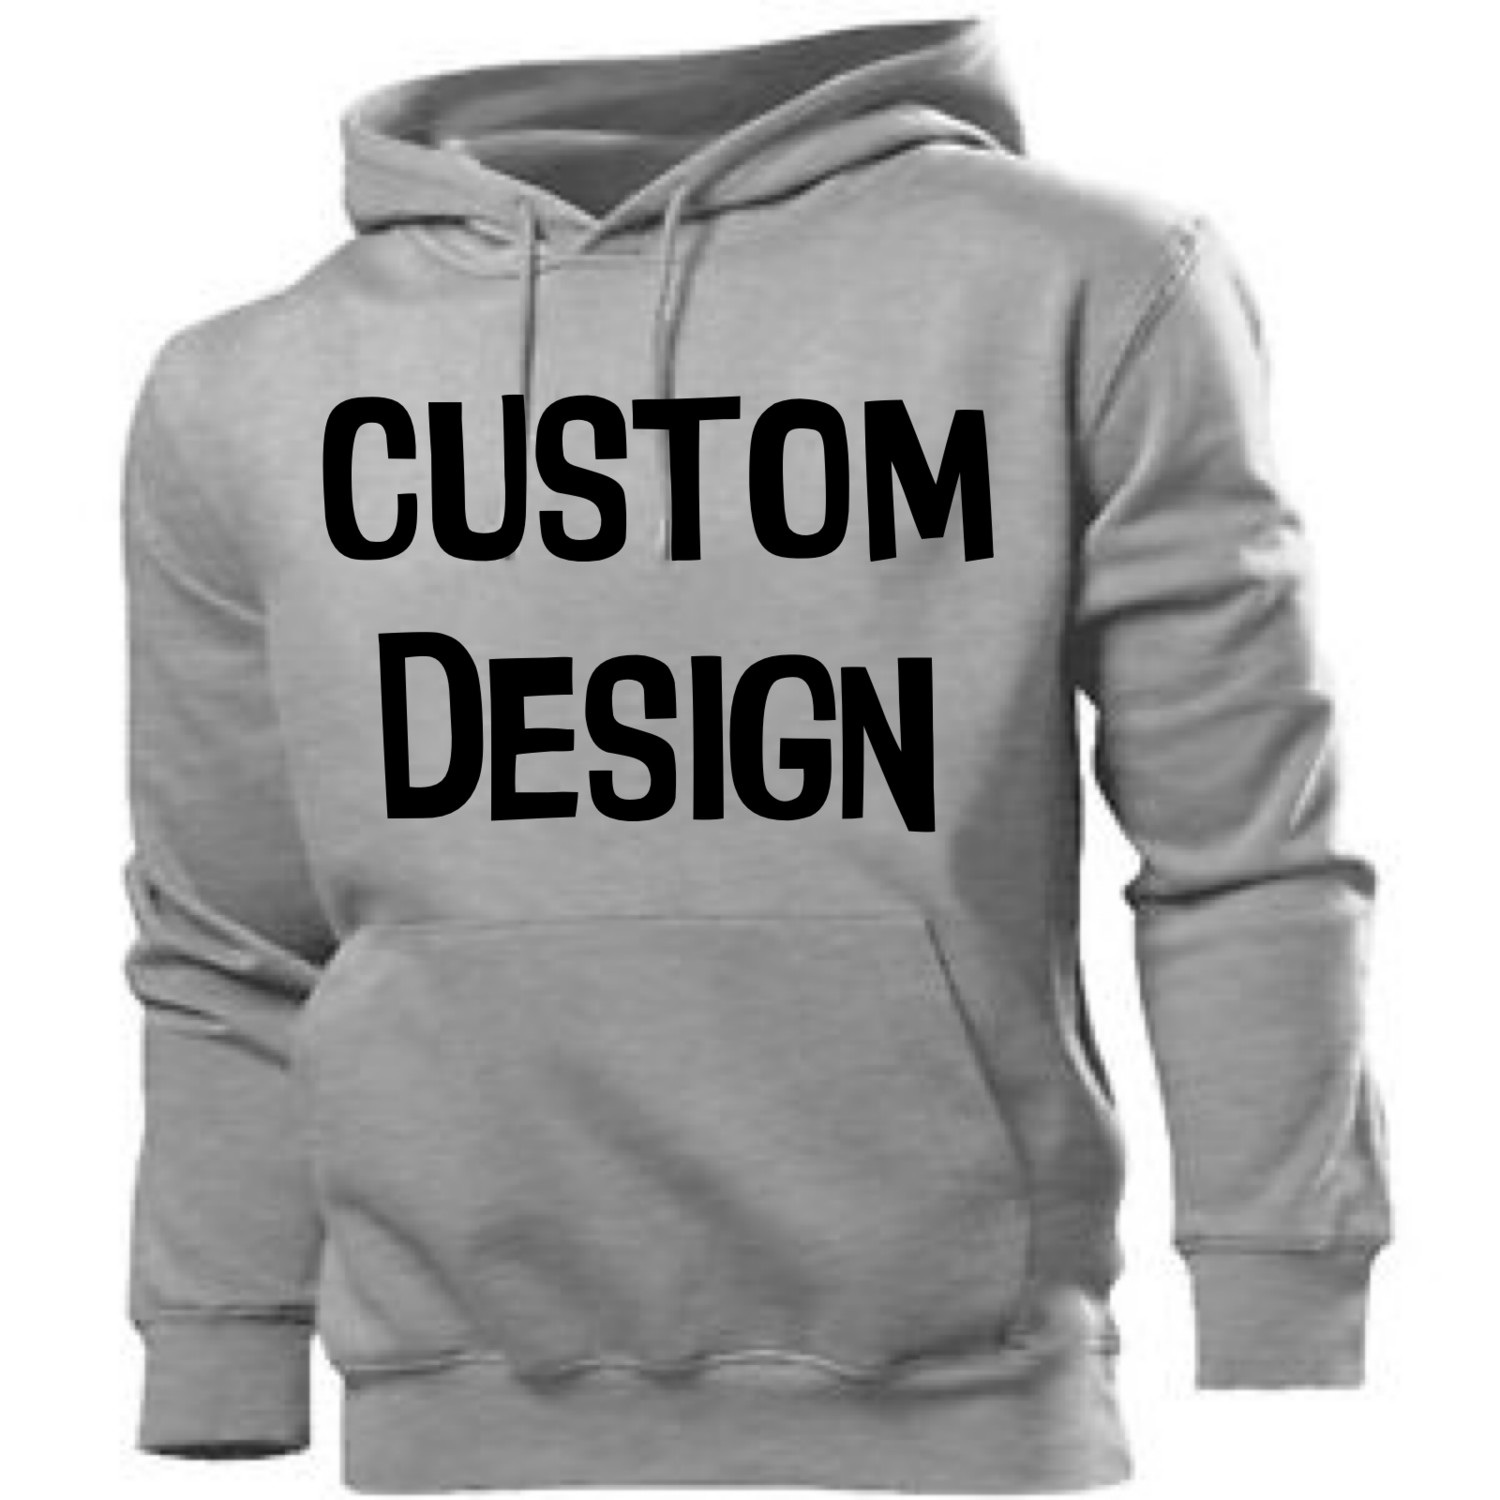 Adults - Any Design Pull Over Hoodie